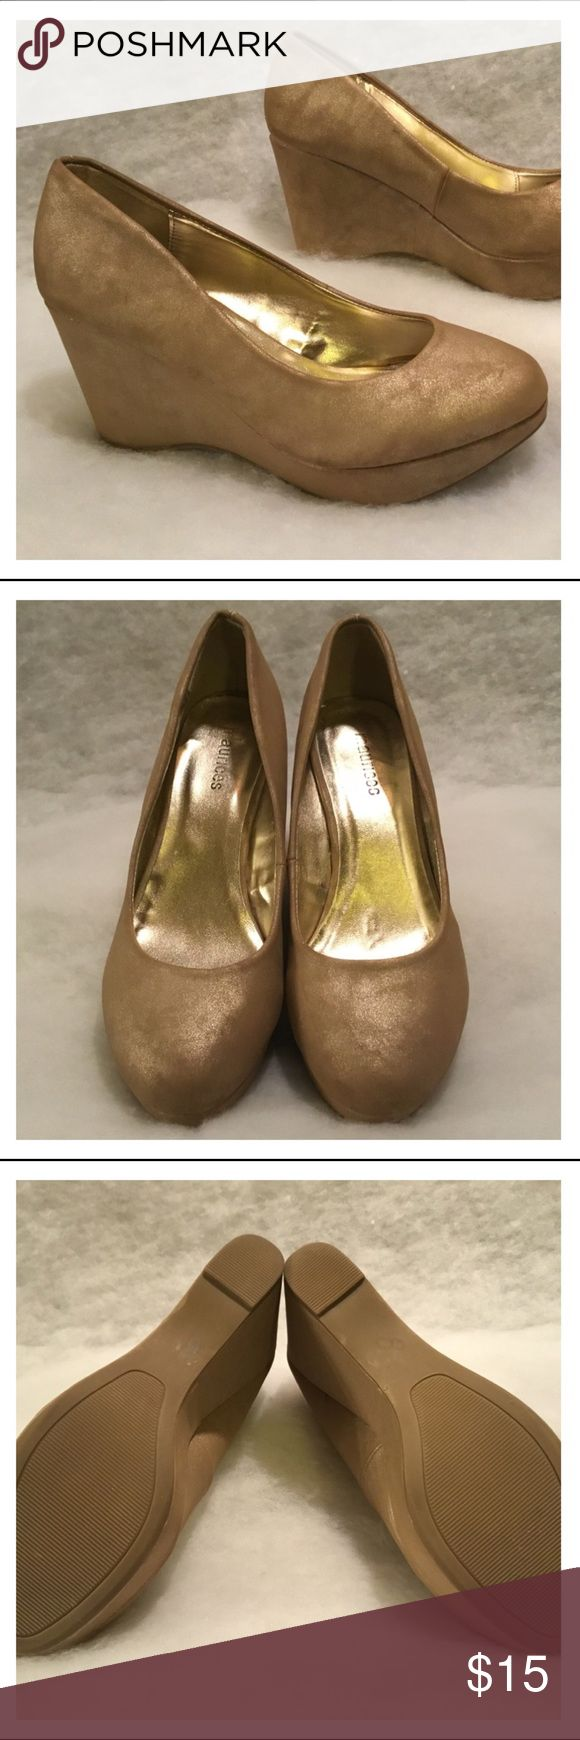 Maurices Metallic Gold Wedge Style Shoes All man made materials, suede appearance and feel, metallic gold, thick wedge style with extreme grip rubber bottoms. Well cared for. Maurices Shoes Wedges